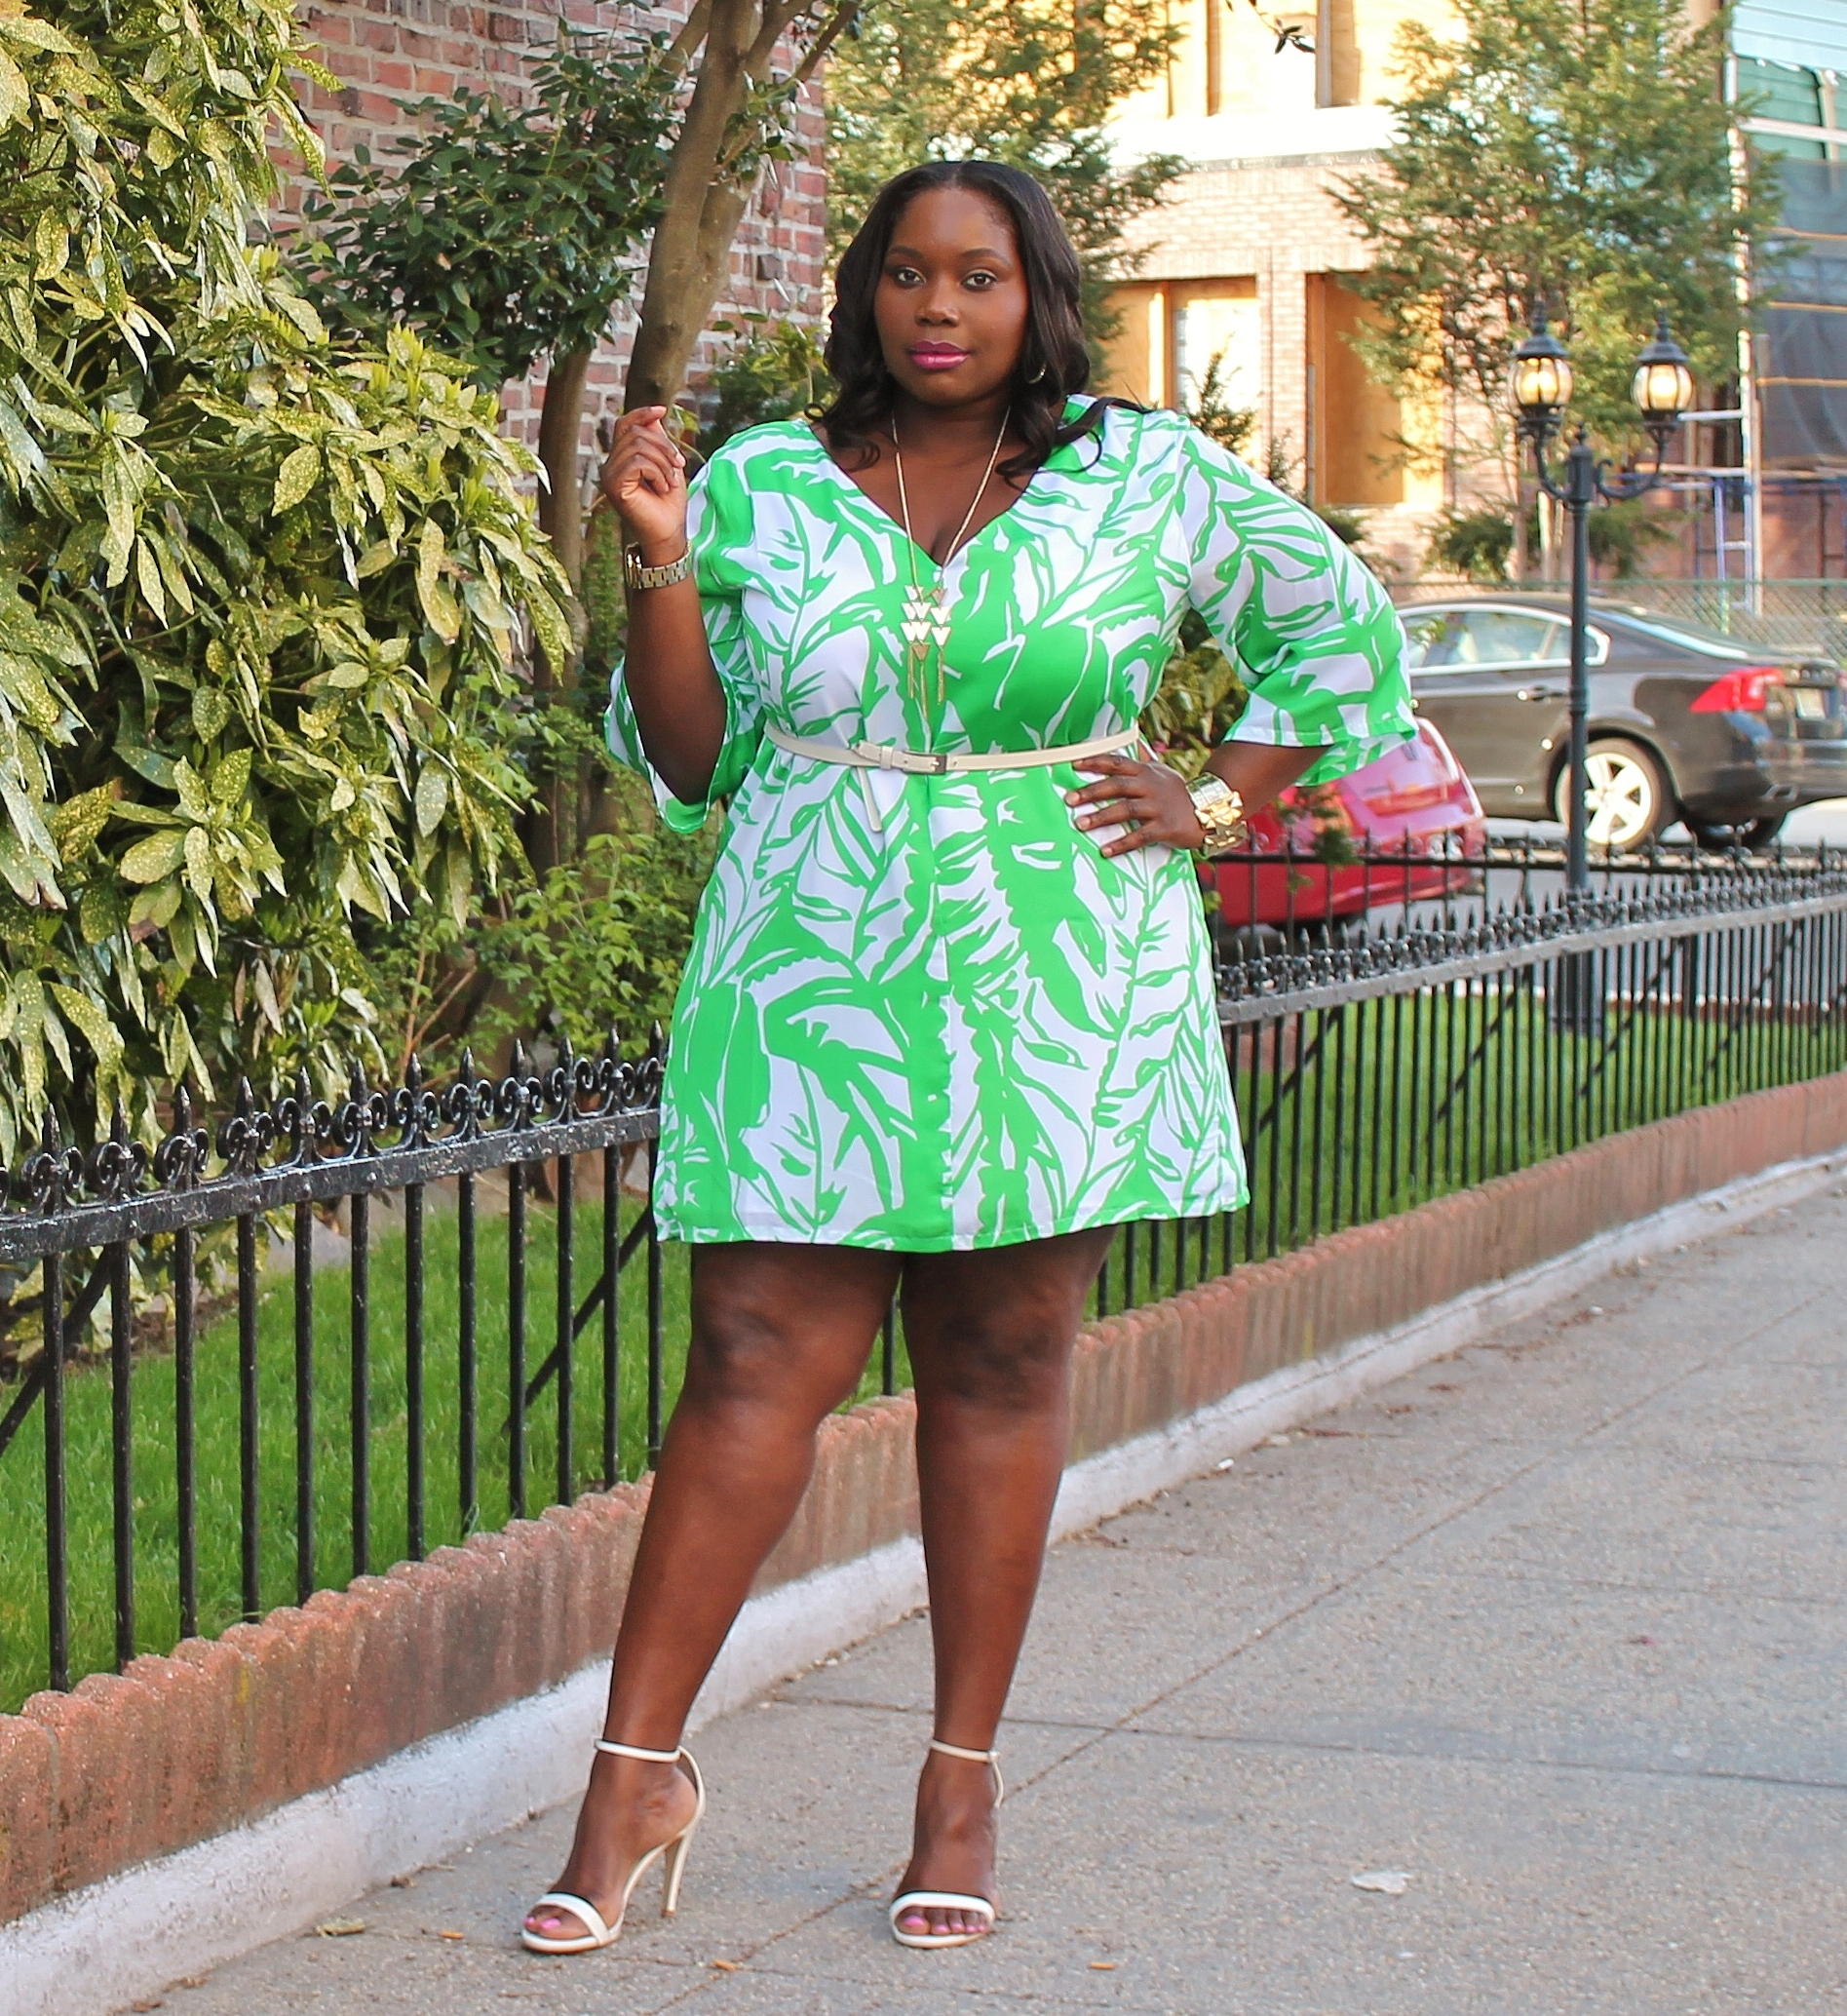 Ebay Lilly Pulitzer Dresses Target This dress along with a